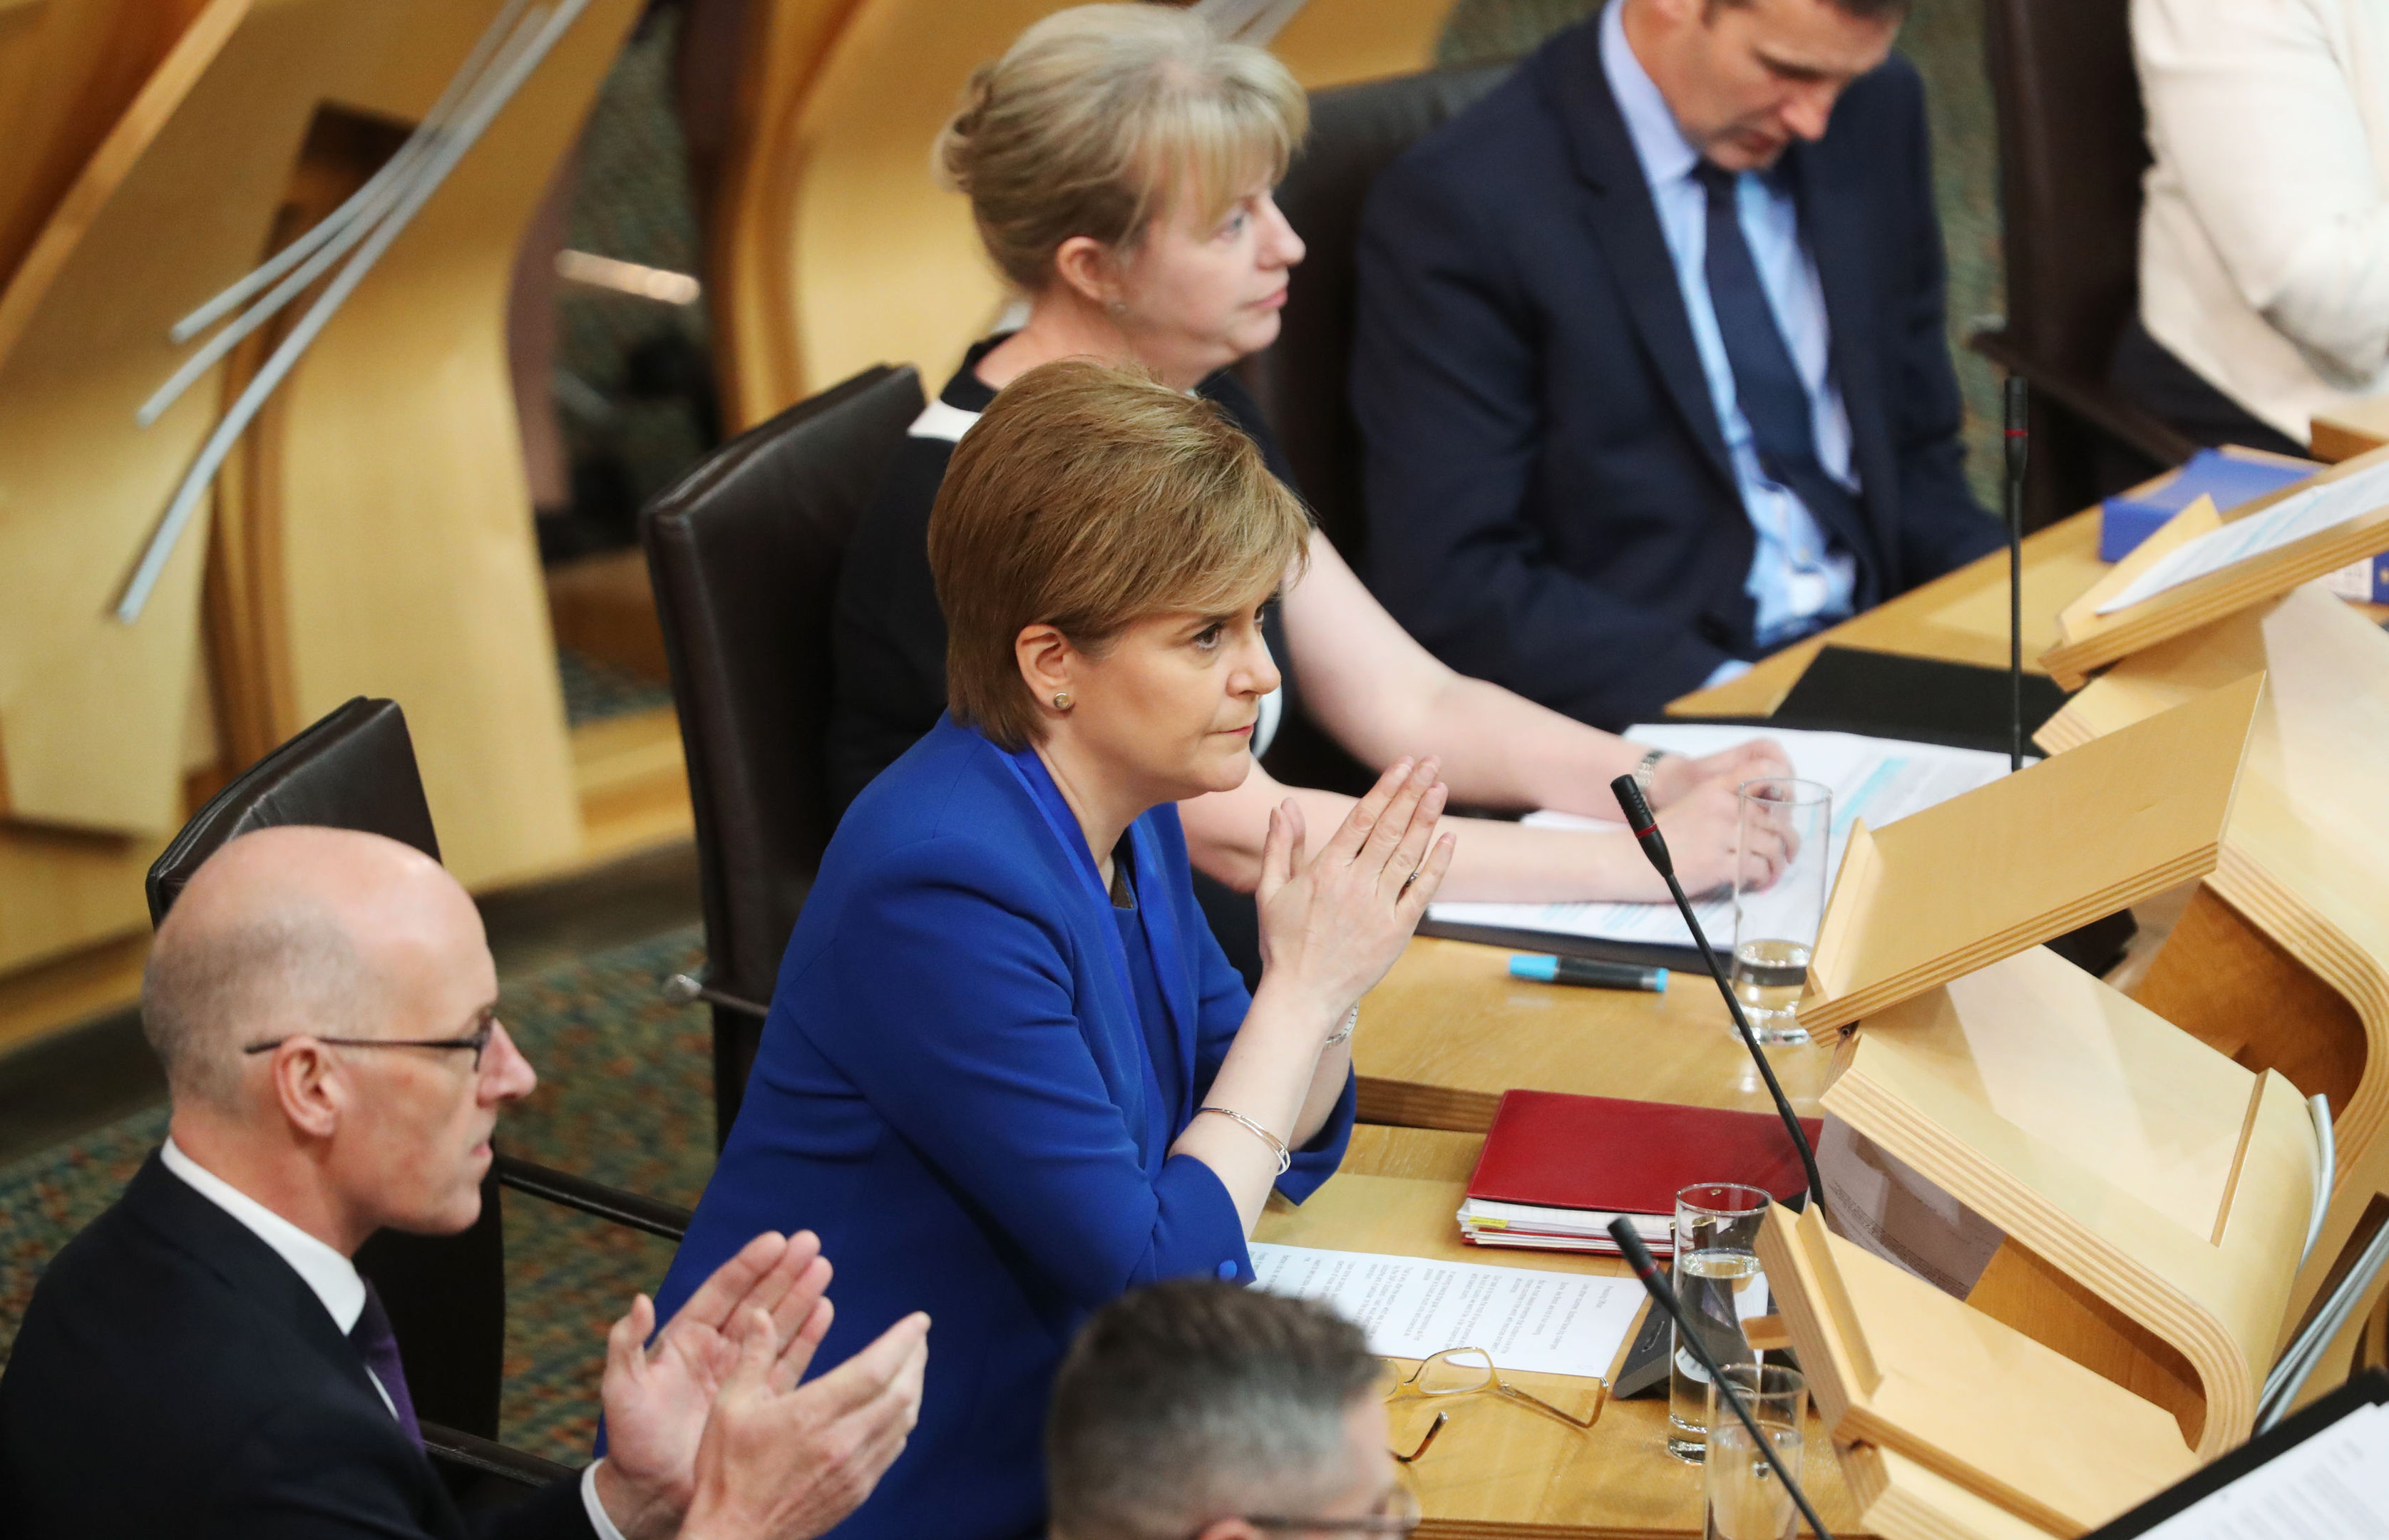 First Minister Nicola Sturgeon at the Scottish Parliament today